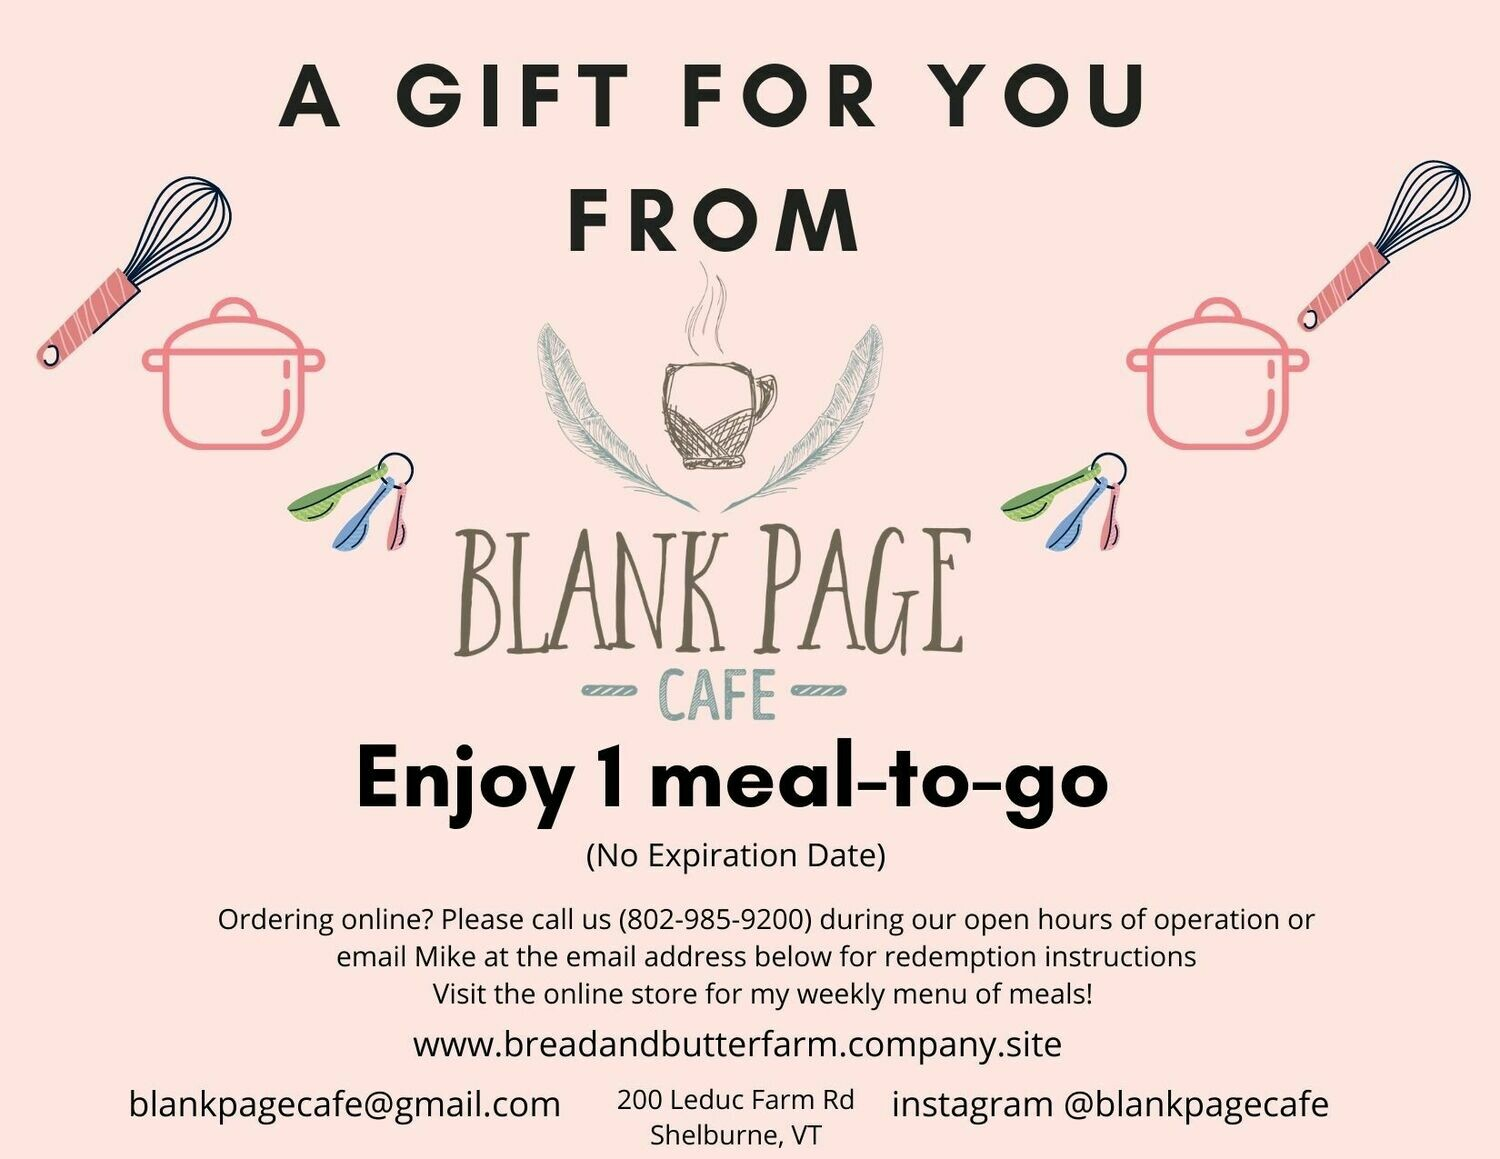 1 MEAL-TO-GO GIFT CERTIFICATE VOUCHER